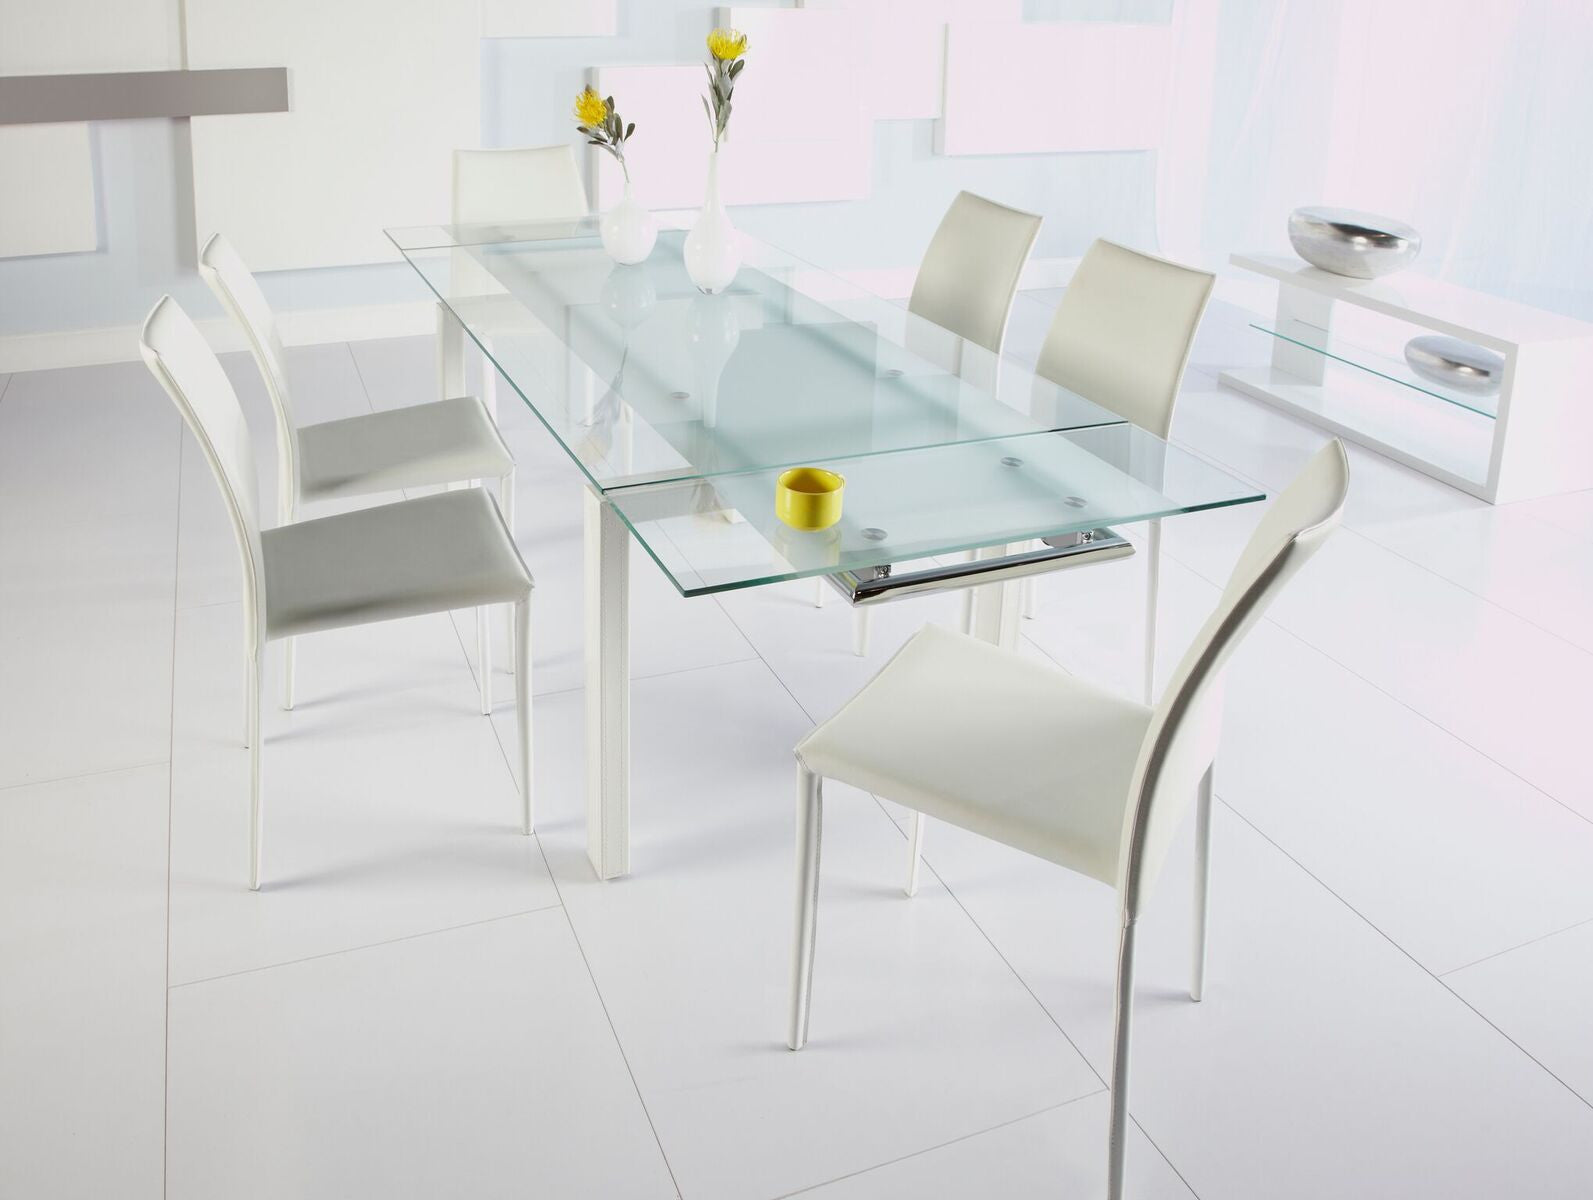 Frosted Glass Desk Or Conference Table With White Frame Extending - Frosted glass conference room table